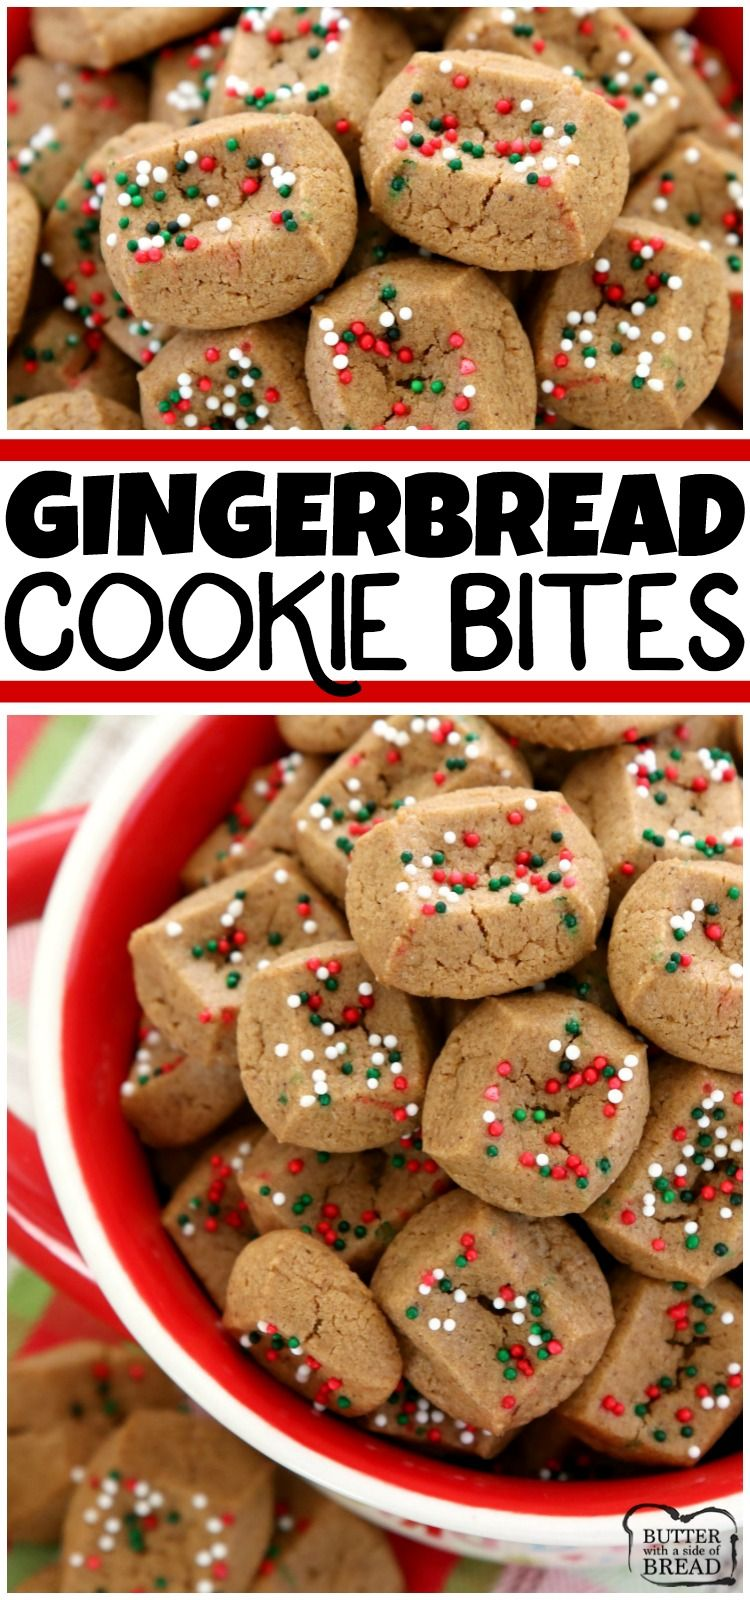 The simplest gingerbread cookie recipe ever! Chewy, bite-sized gingerbread cooki…